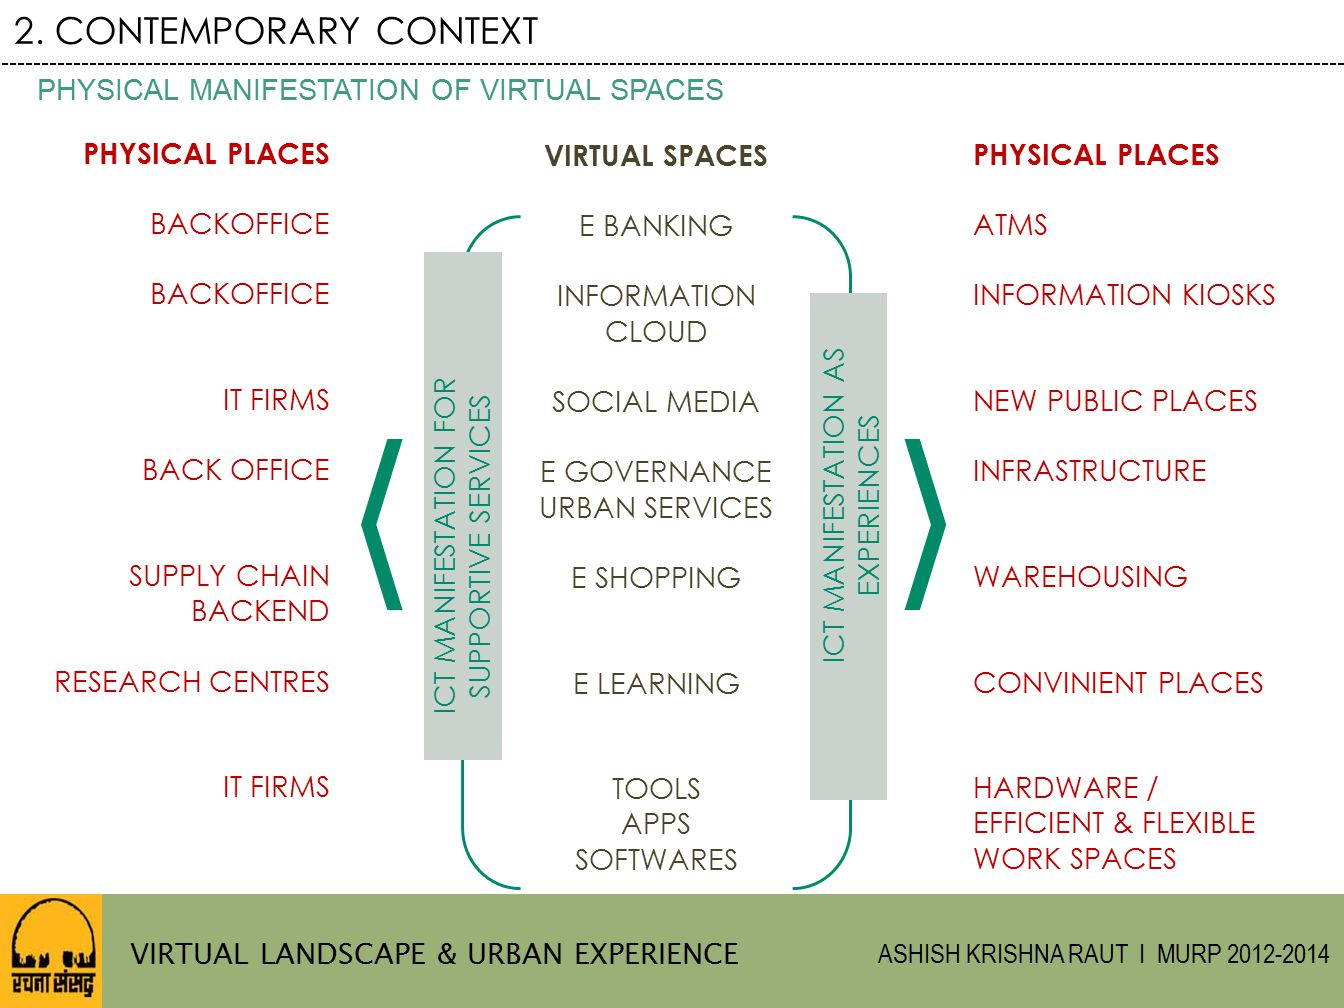 2. CONTEMPORARY CONTEXT PHYSICAL MANIFESTATION OF VIRTUAL SPACES